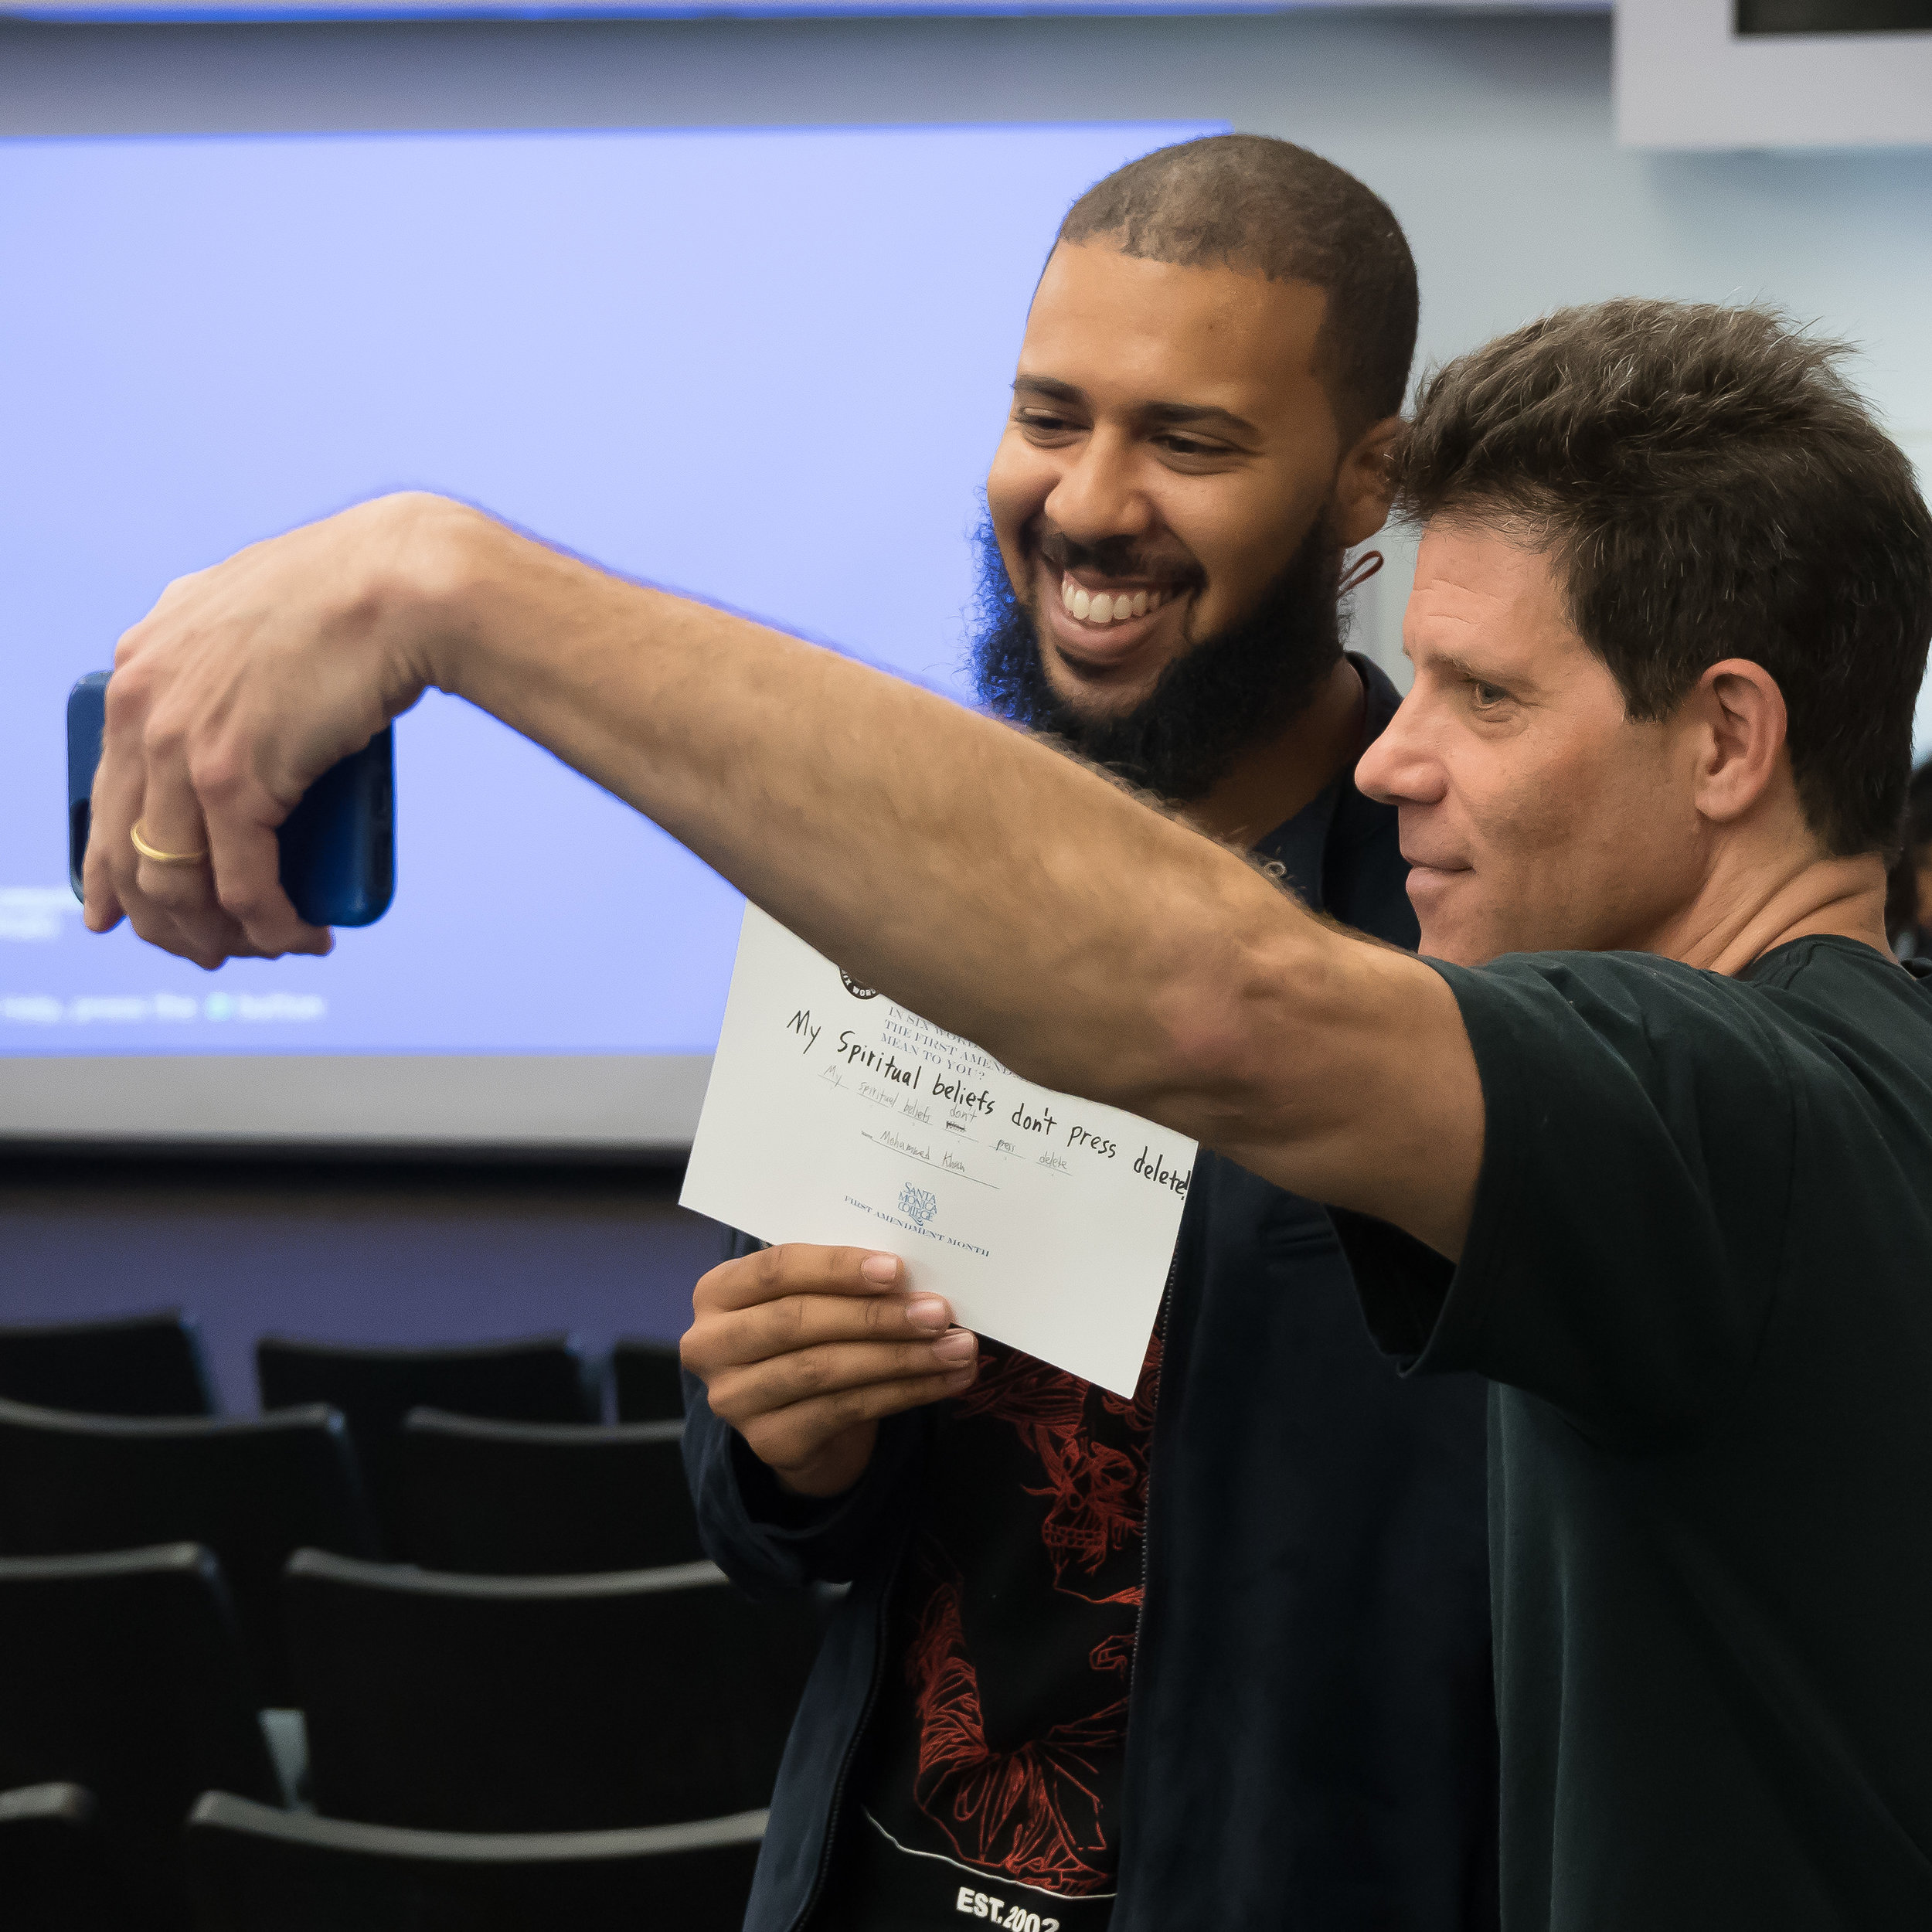 """Larry Smith (right) founder of Six-Word Memoirs, takes a selfie with student Mohammed Khan at Santa Monica College in Santa Monica, California on May 3, 2018. Smith spoke about summarizing the meaning of the First Amendment in six words, and was especially taken with Khan's, which was, """"My spiritual beliefs; don't press delete,"""" referring to how Khan is often mistaken for Mulsim, when he is, in fact, Christian.  (Helena Sung/Corsair Photo)."""